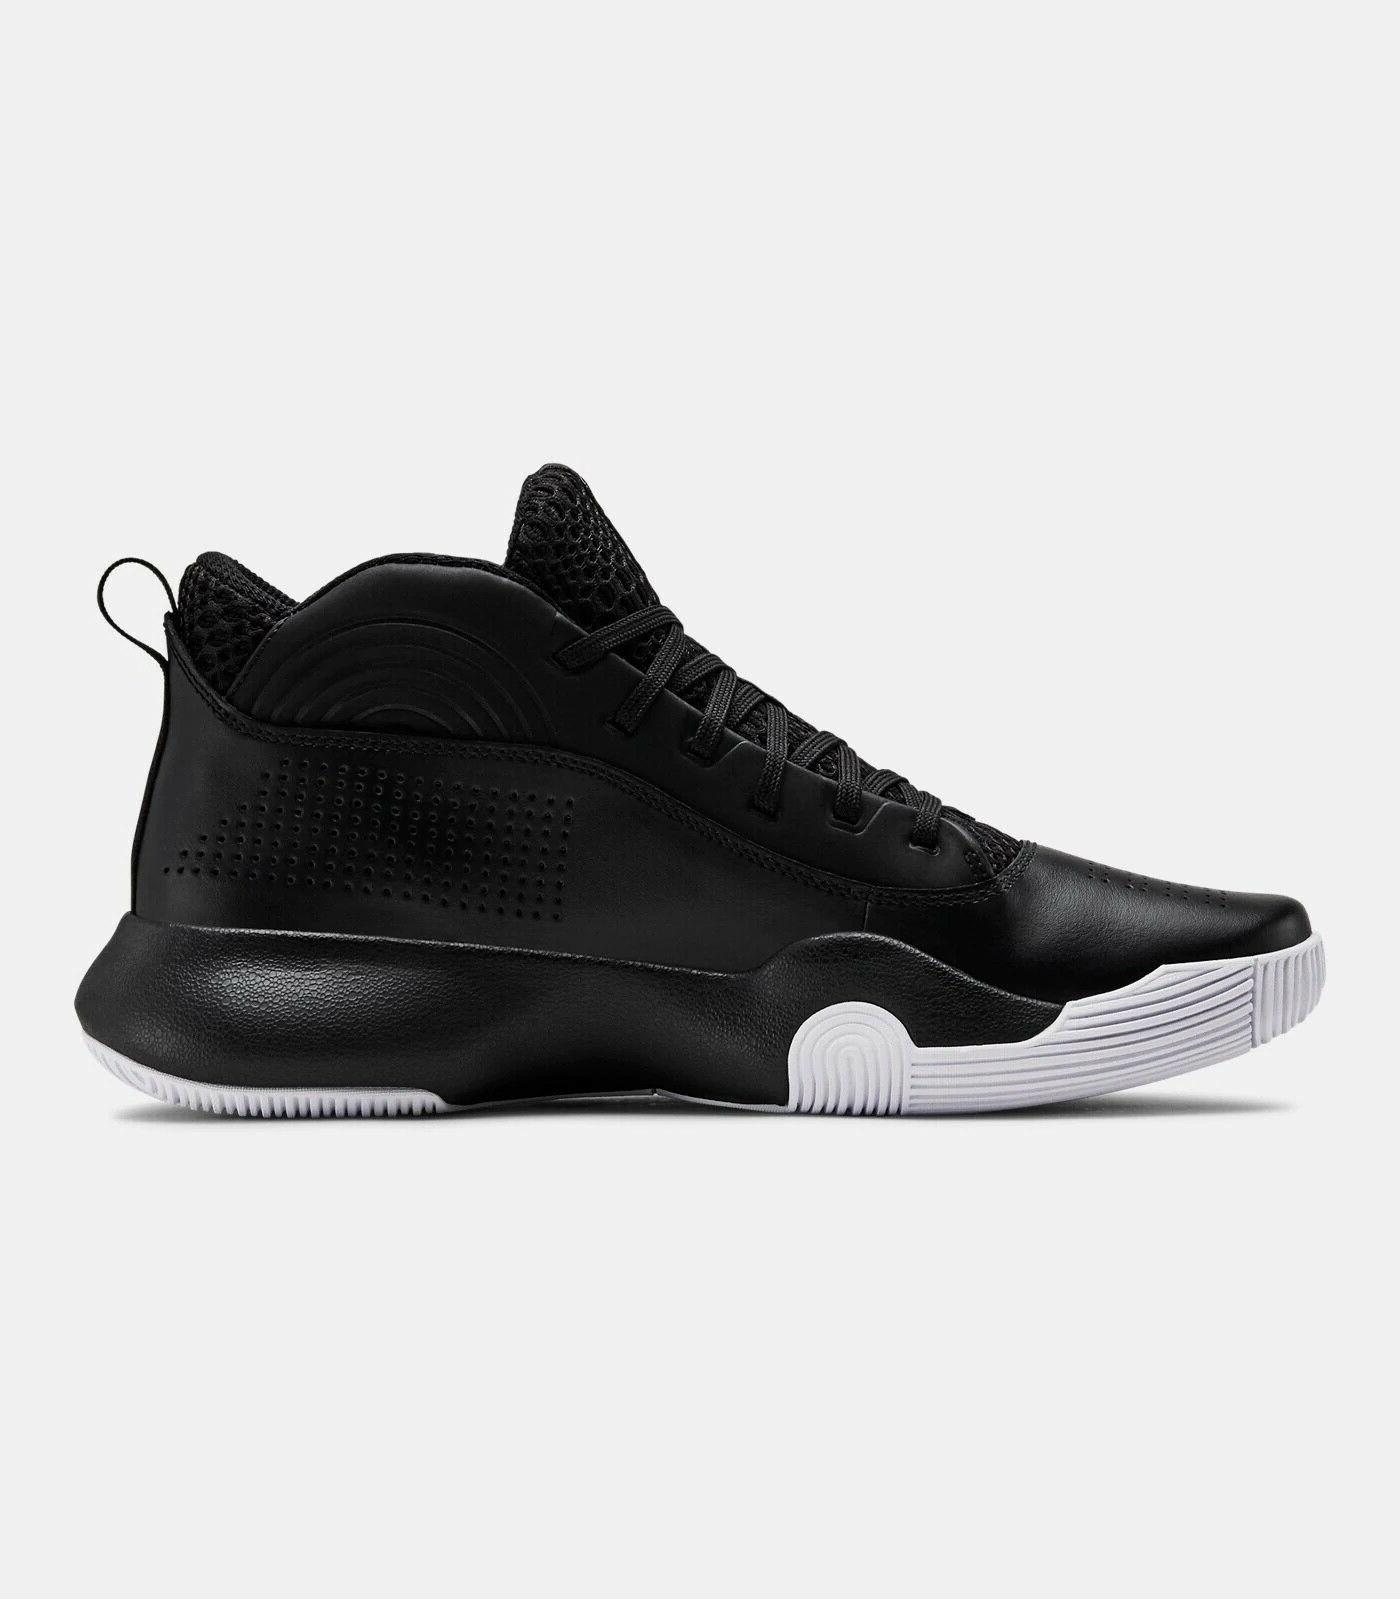 2020 Under Armour UA Basketball Black Style Shoes